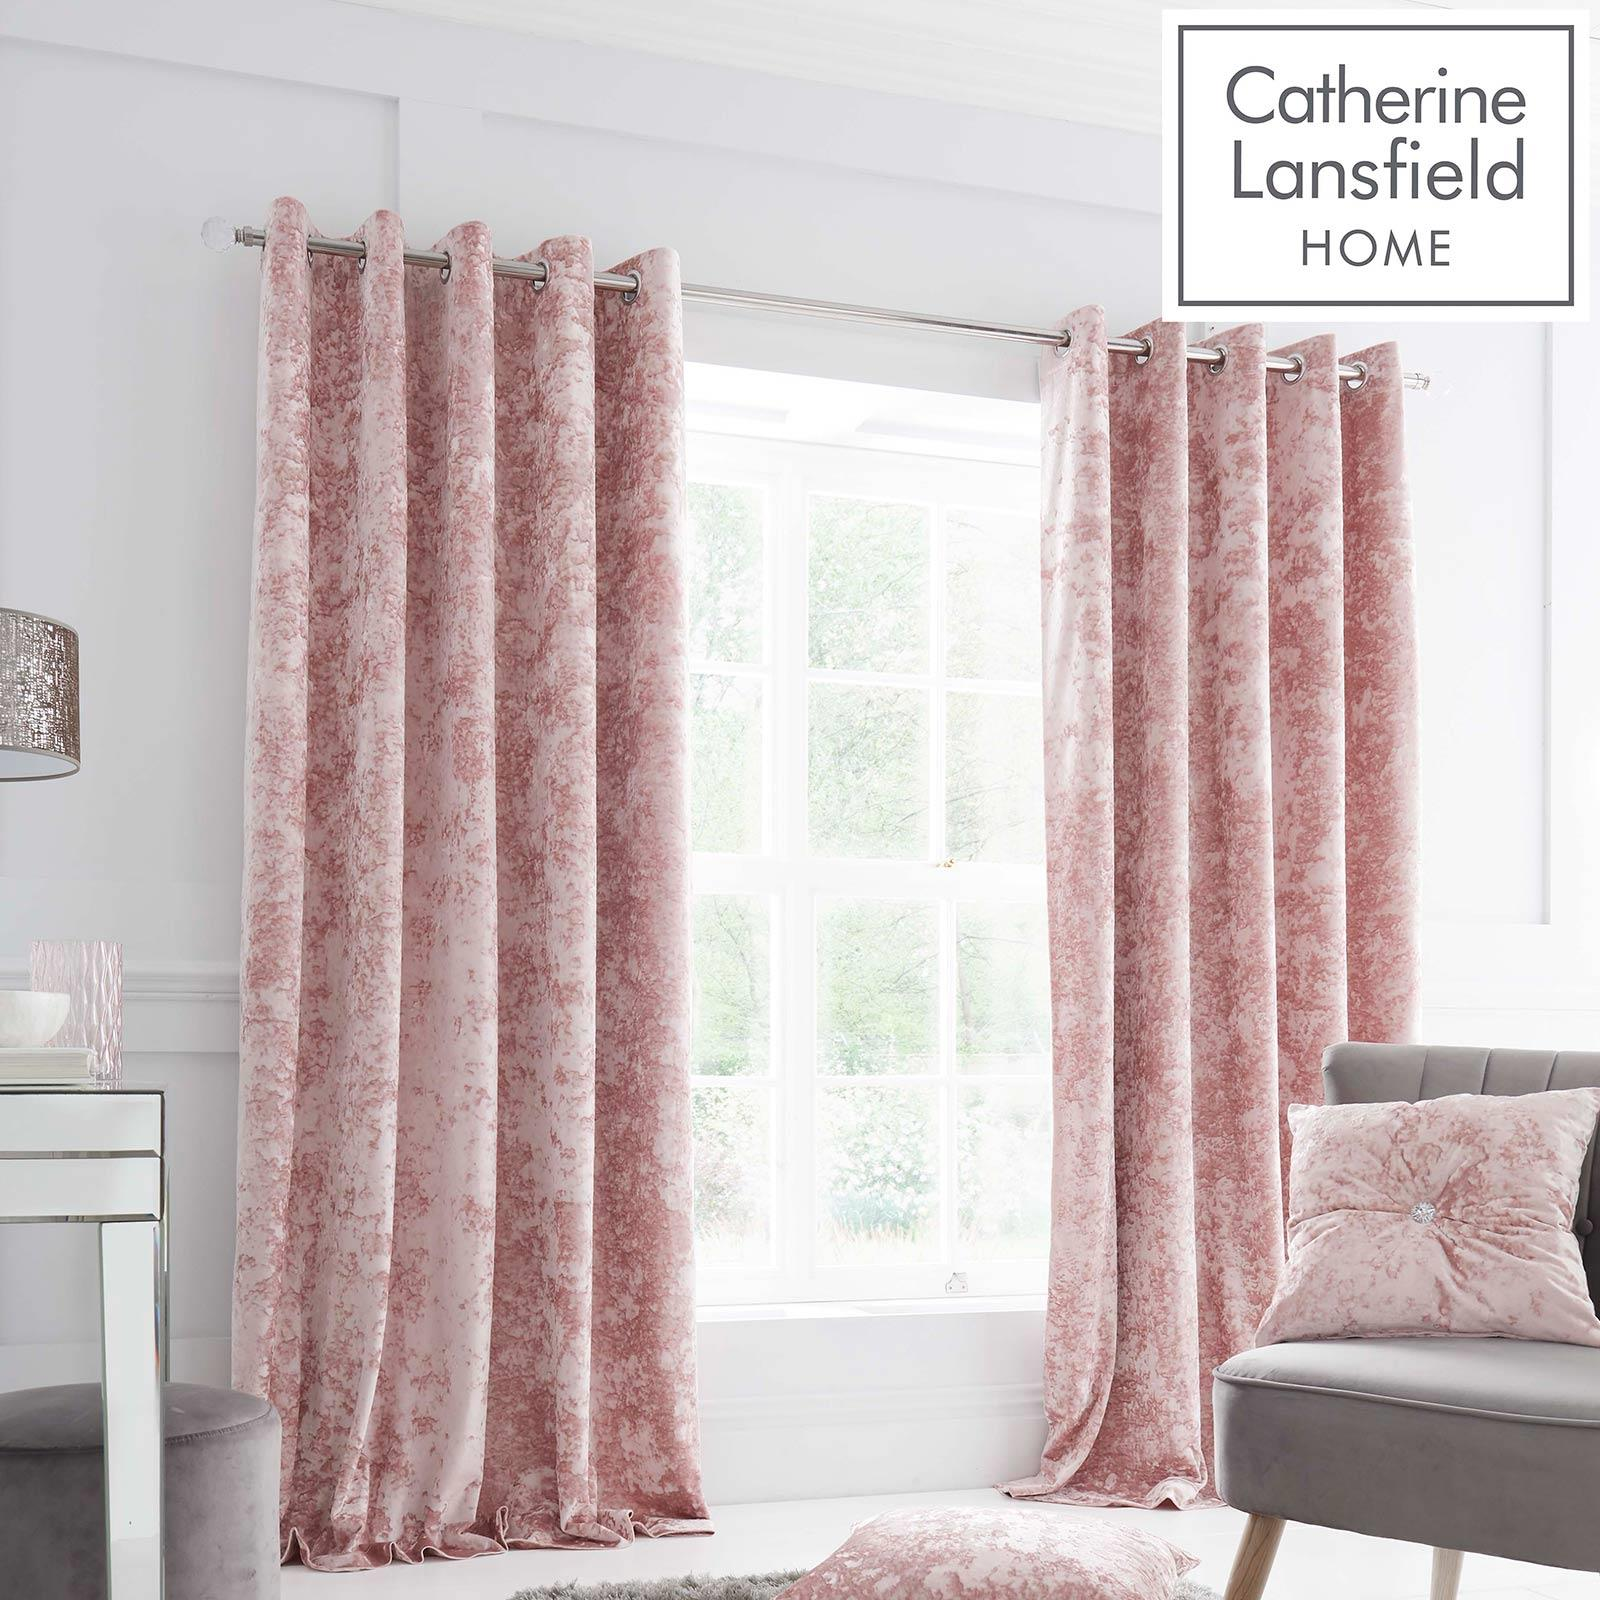 Catherine Lansfield Crushed Velvet Blush Eyelet Curtains Pink Lined Curtain Pair Ebay